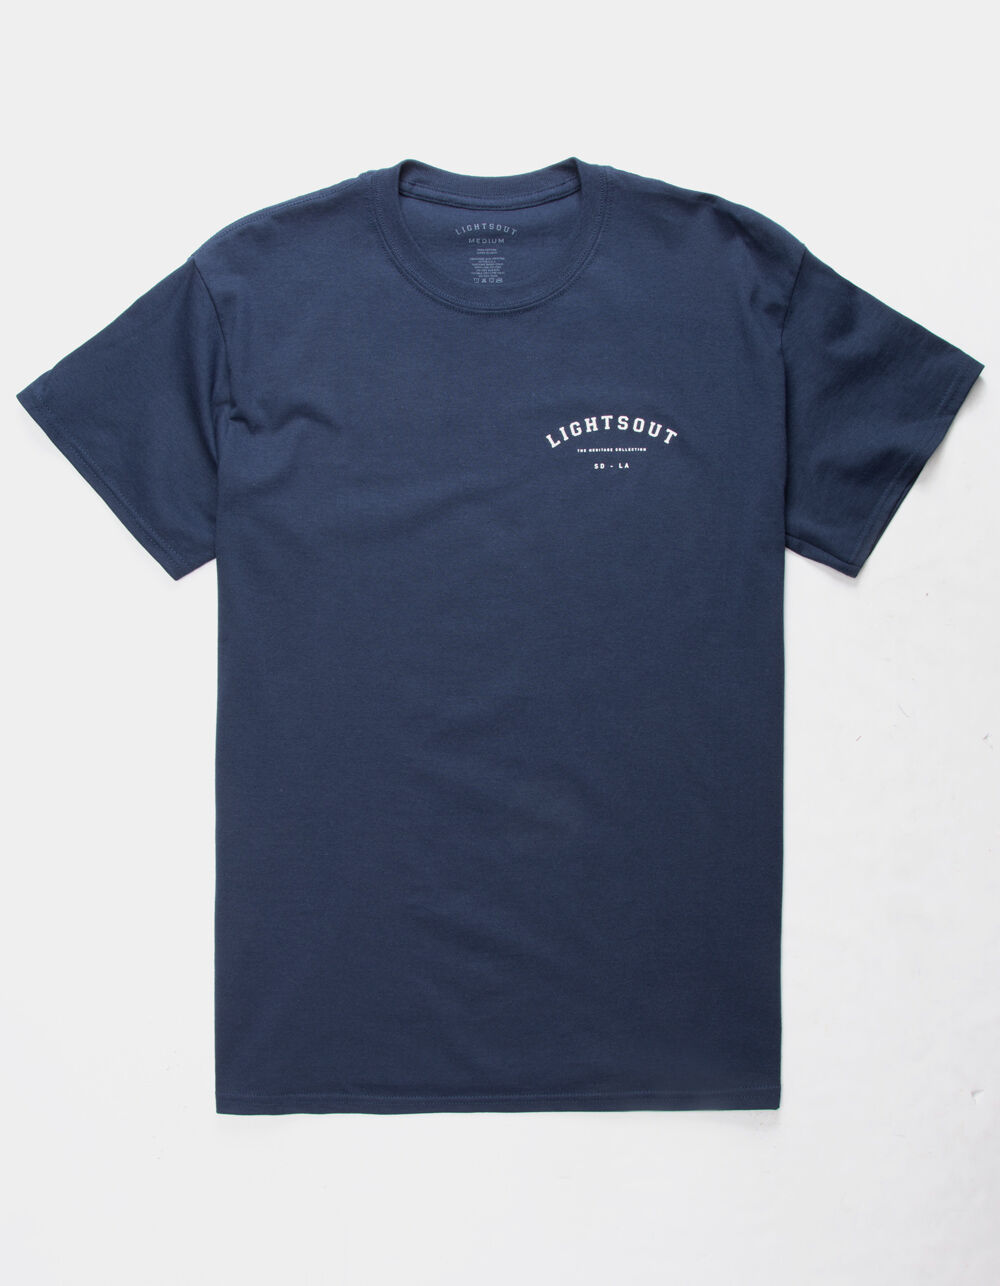 Image of LIGHTS OUT THE HERITAGE COLLECTION CLASSIC T-SHIRT